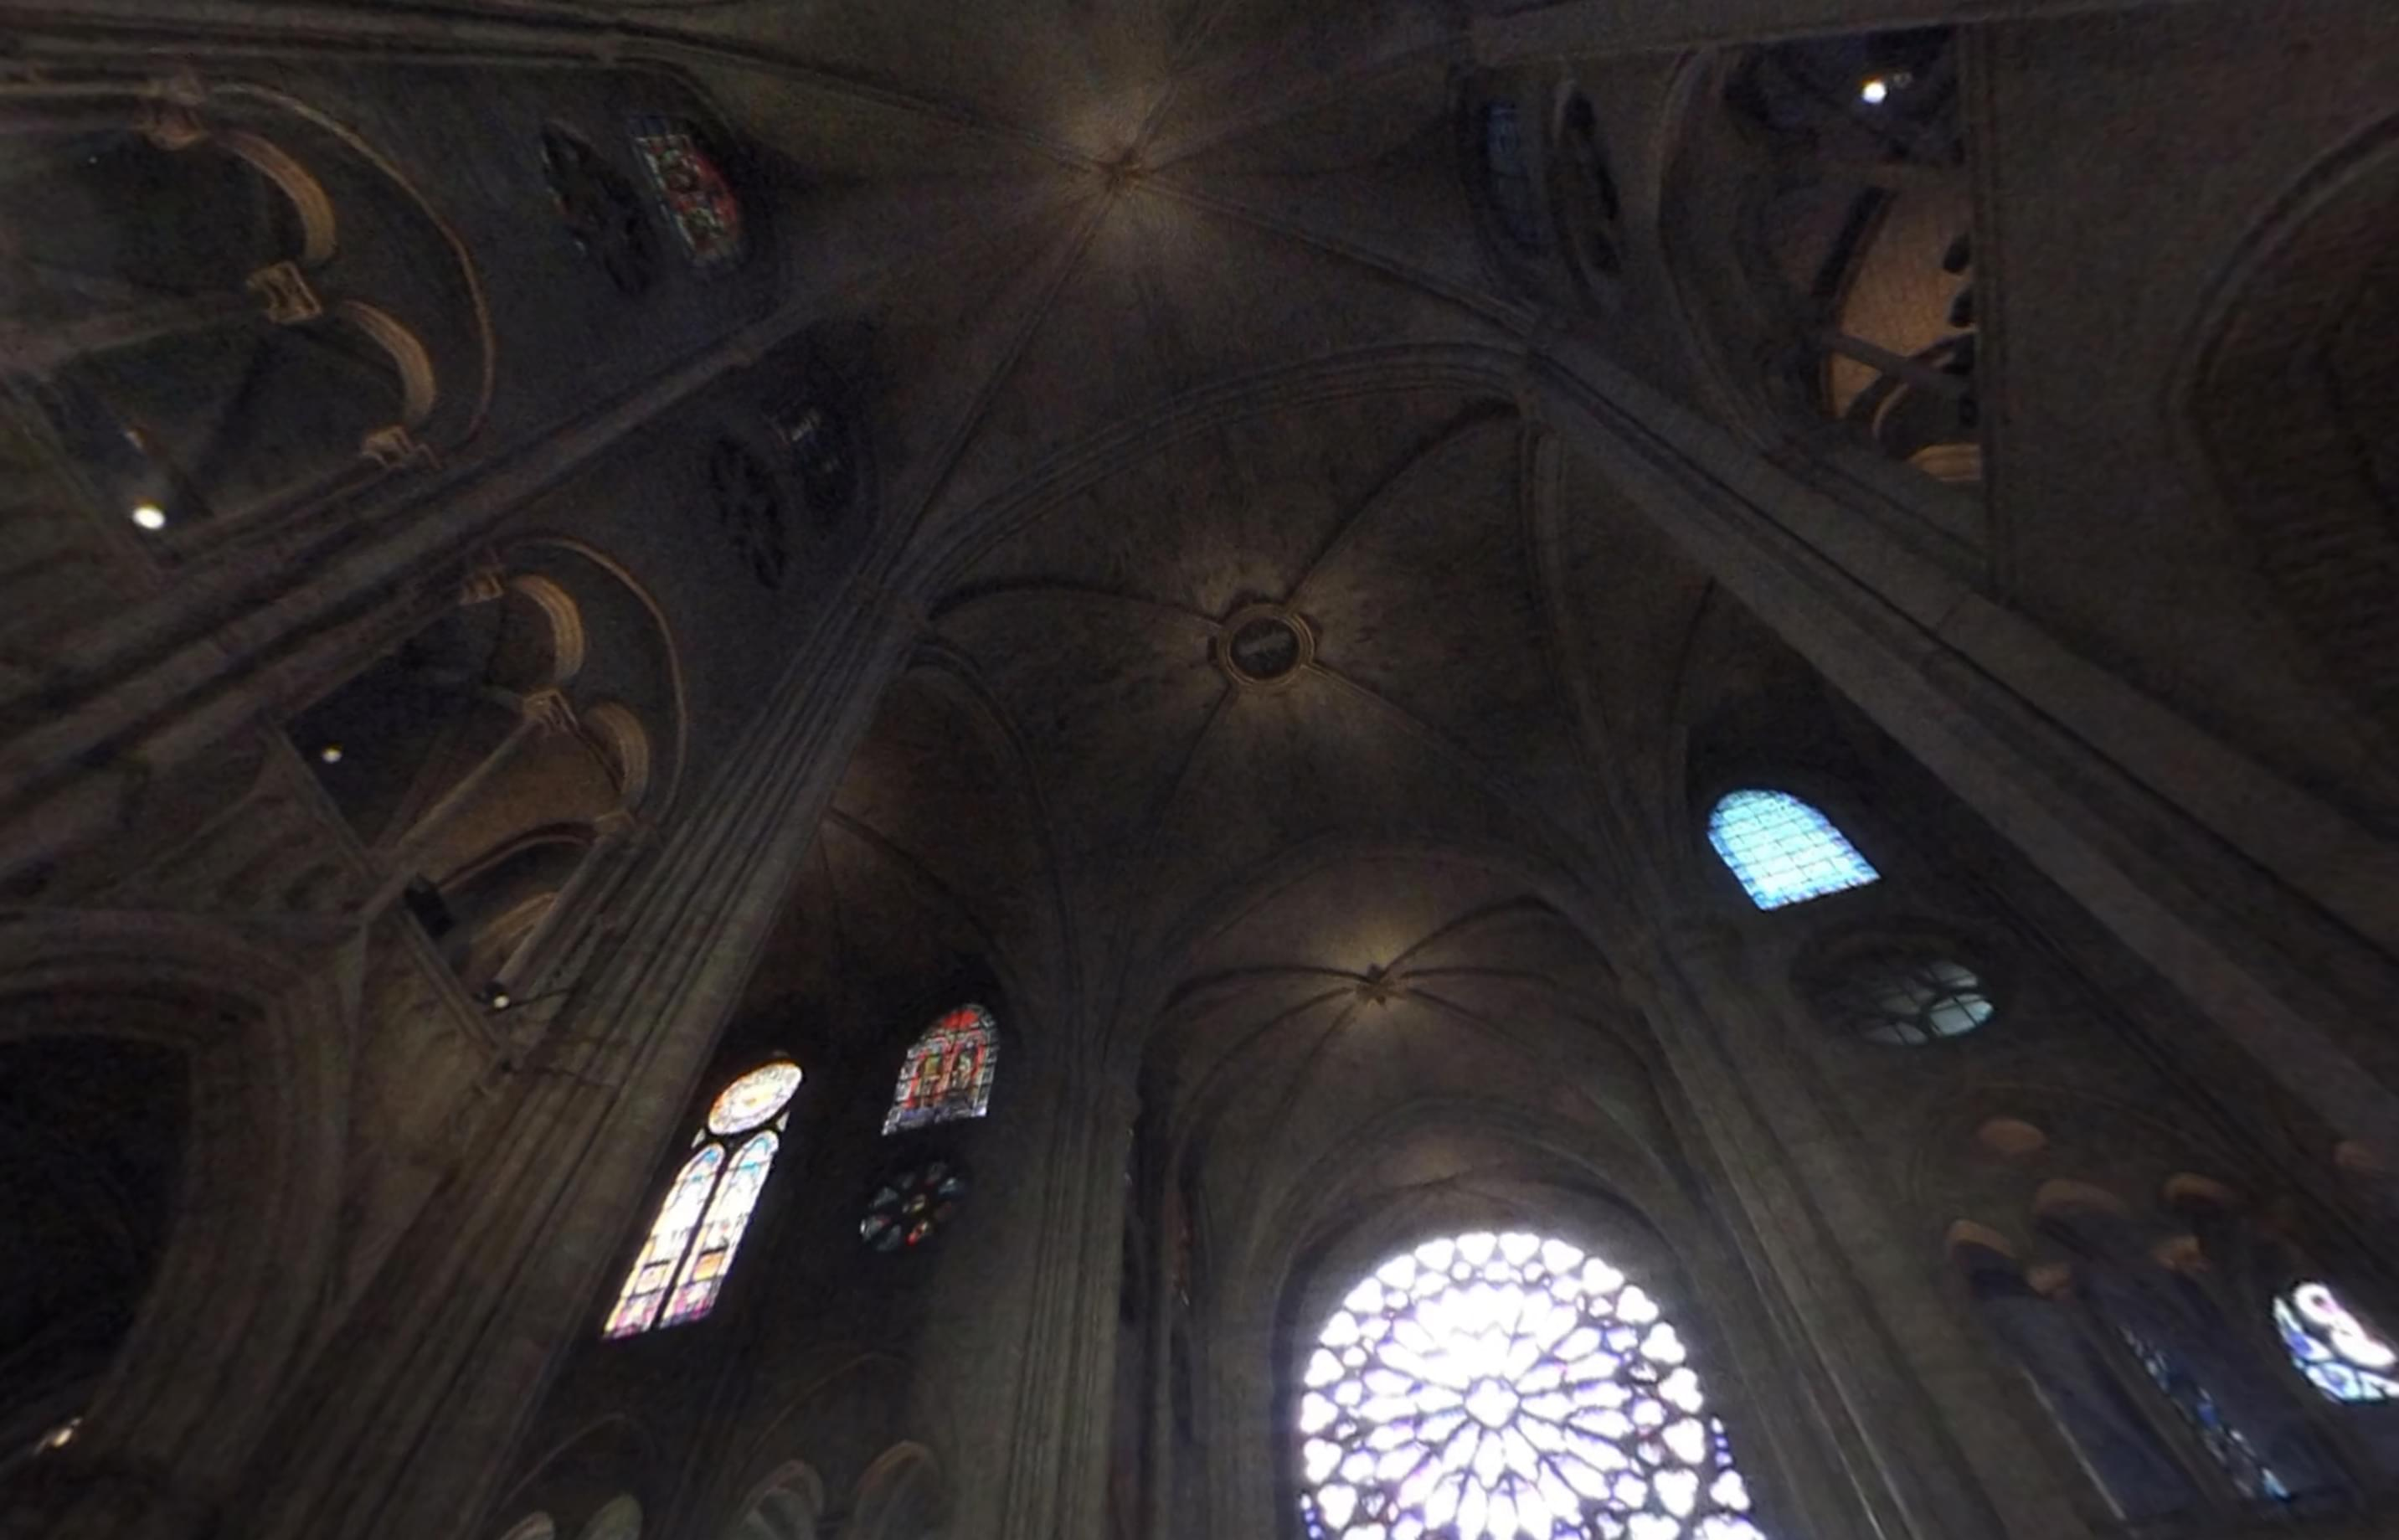 See 360 Video of the inside of Notre Dame